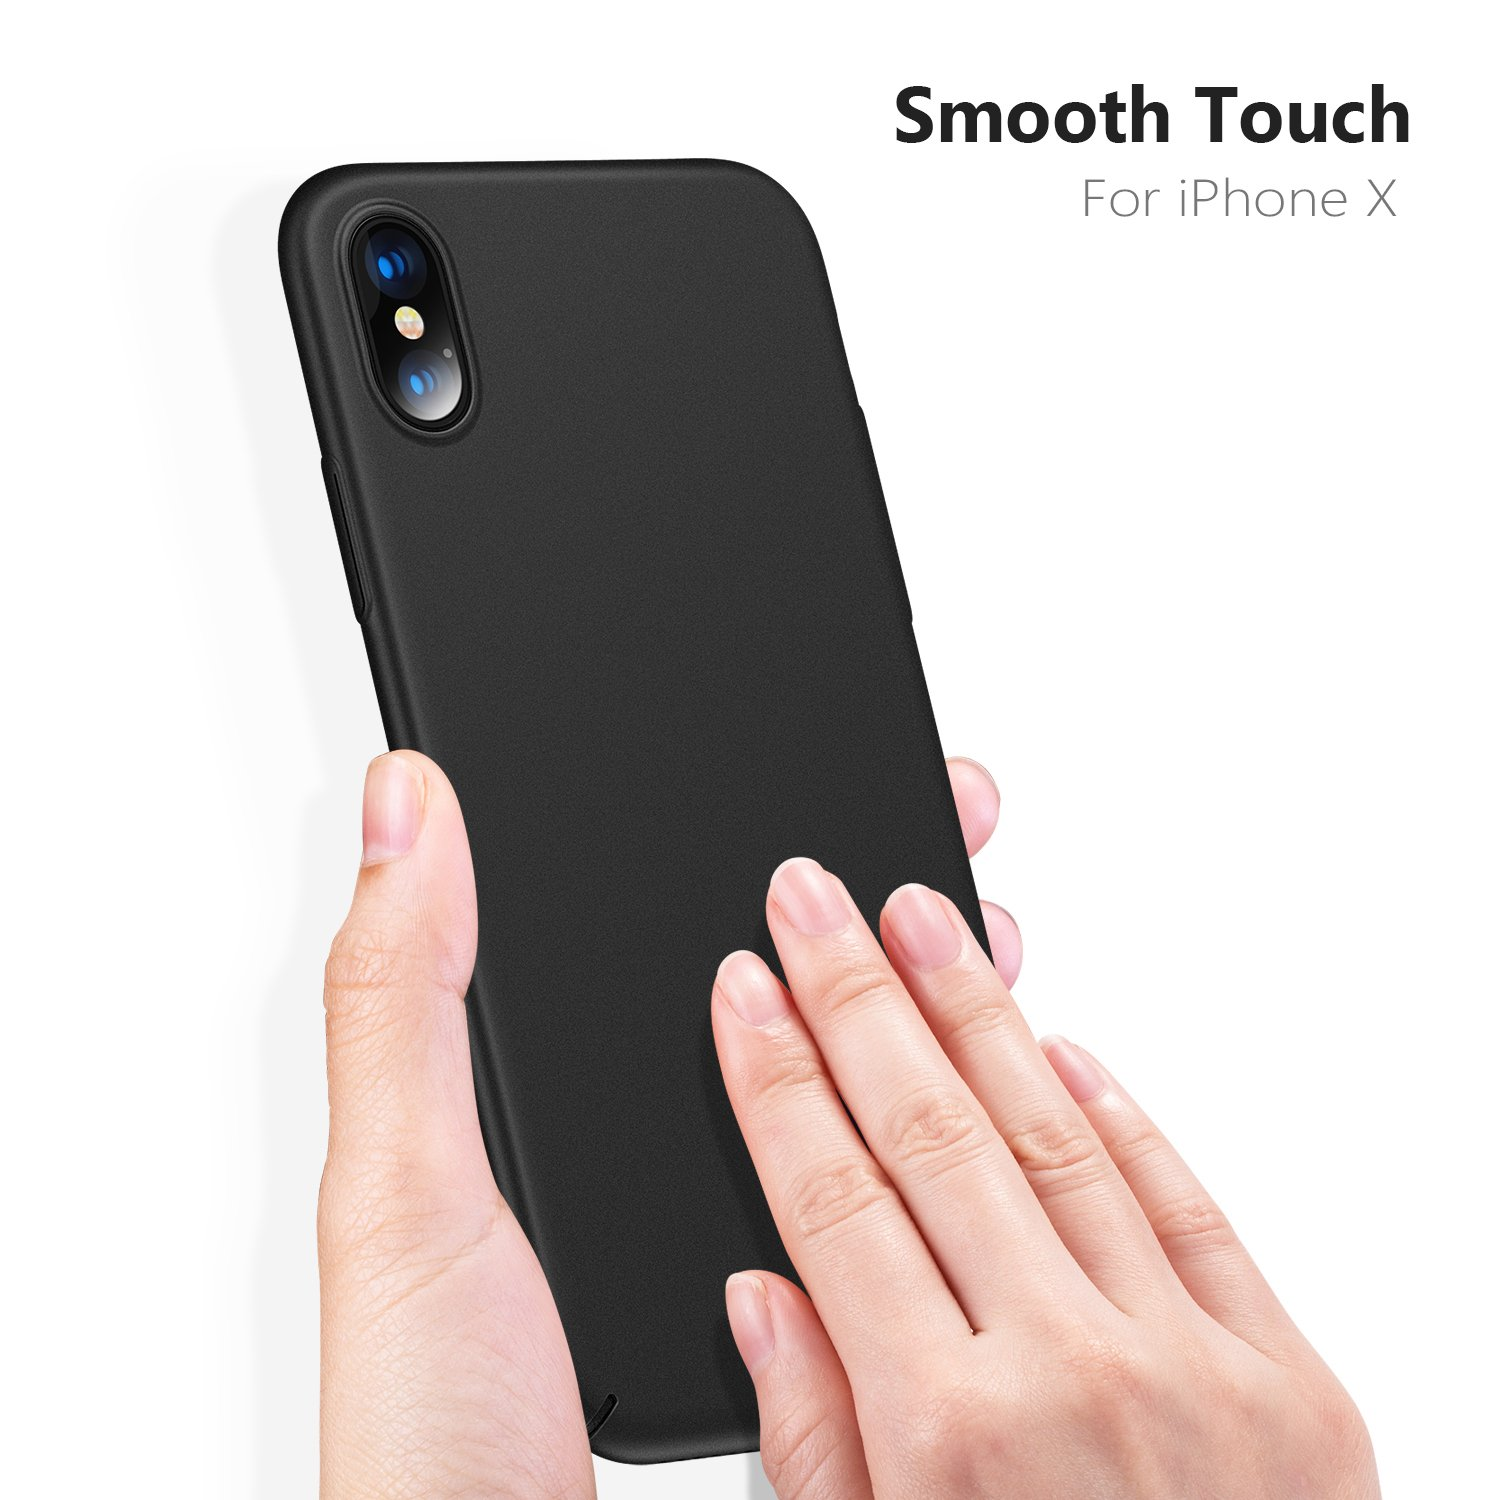 TORRAS Slim Fit iPhone Xs Case/iPhone X Case, Hard Plastic PC Ultra Thin Mobile Phone Cover Case with Matte Finish Coating Grip Compatible with iPhone X/iPhone Xs 5.8 inch, Space Black by TORRAS (Image #5)